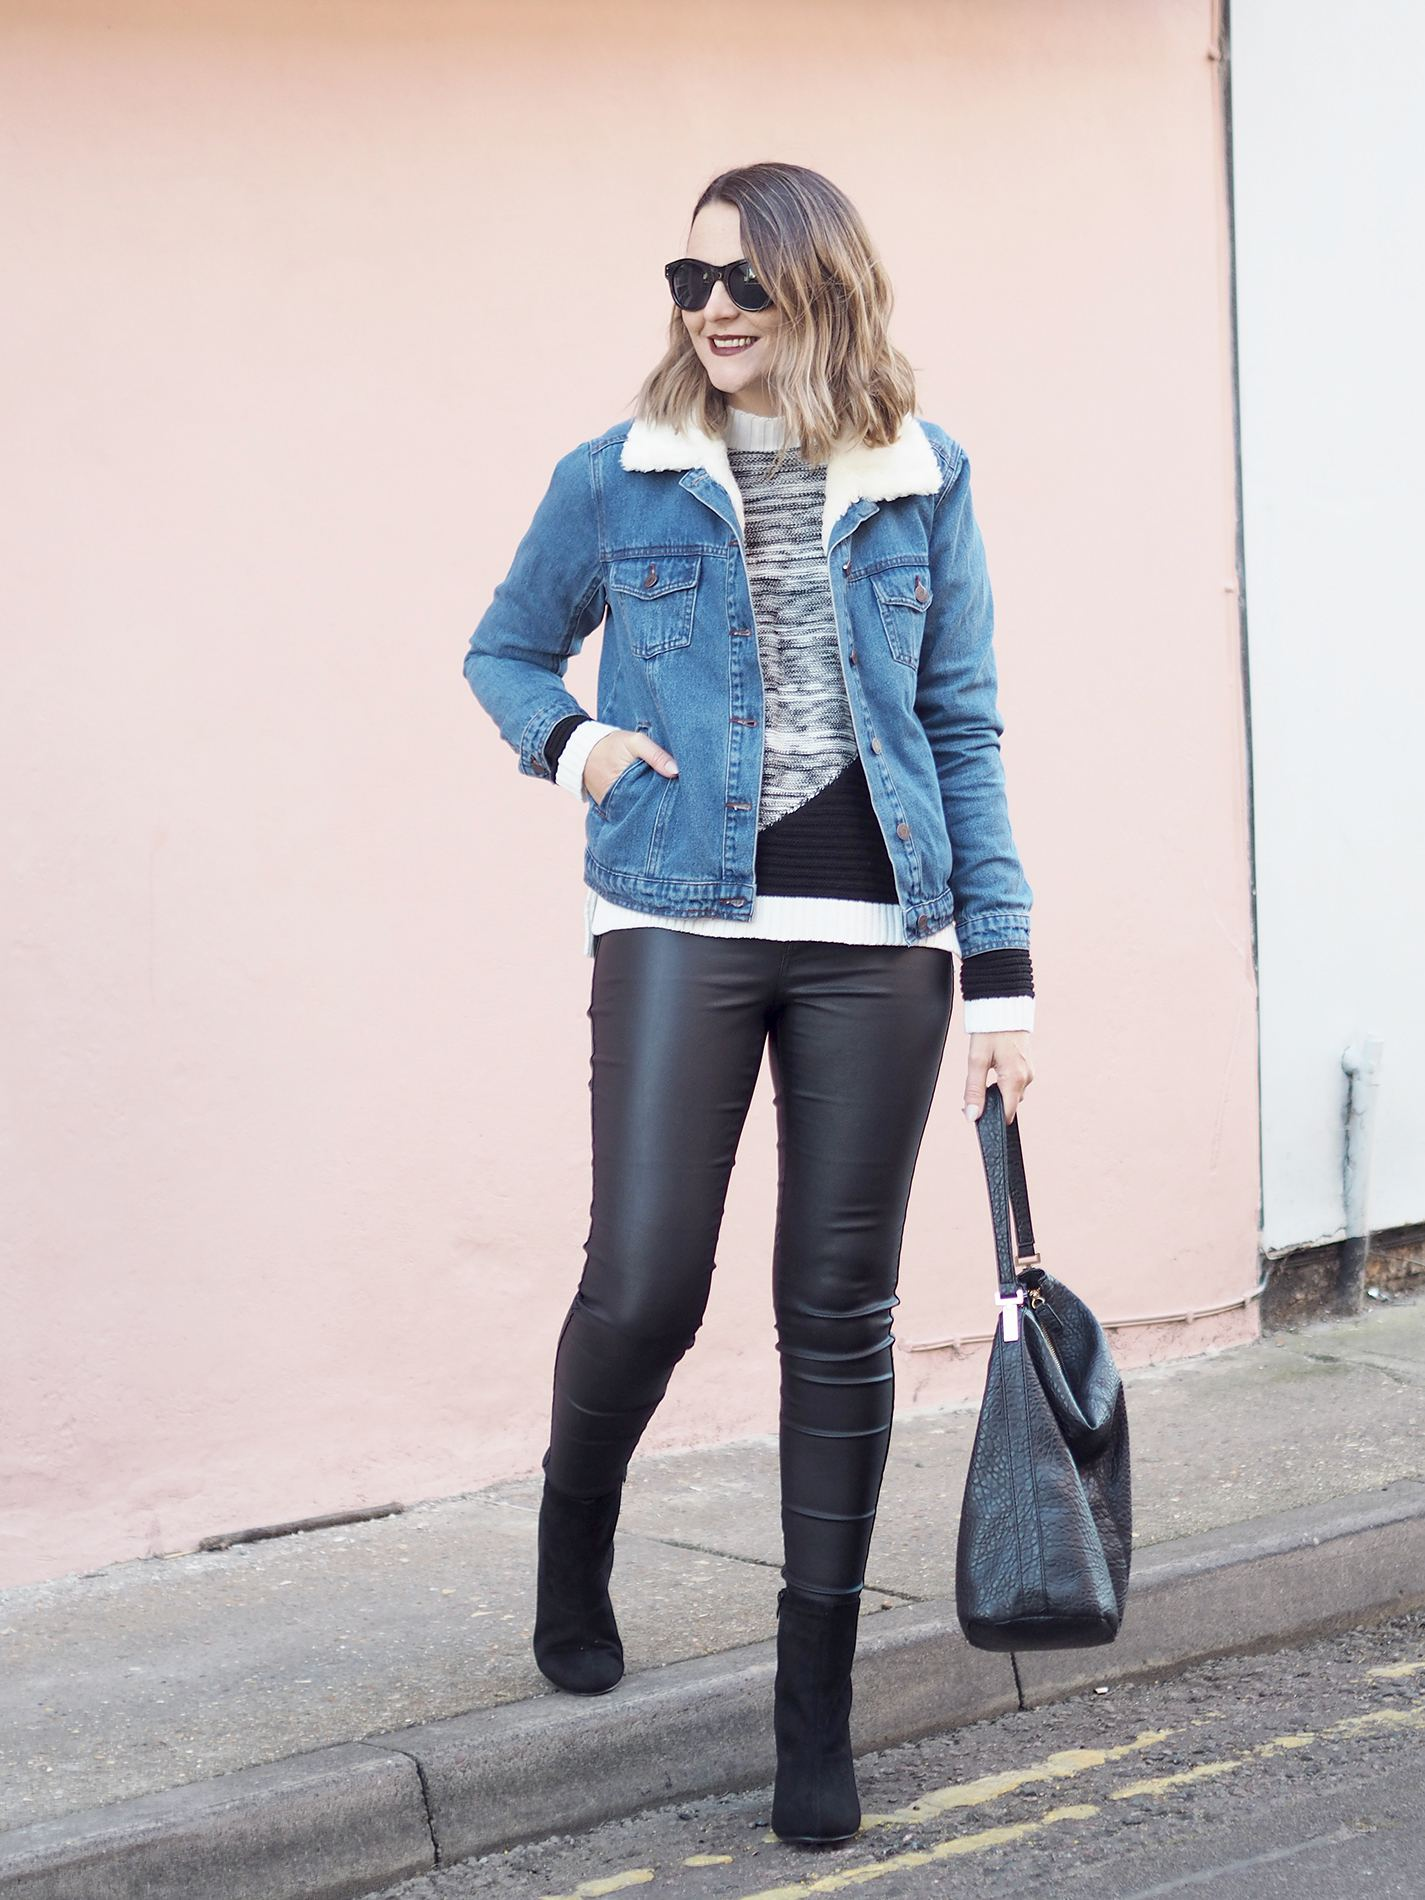 denim jacket for winter